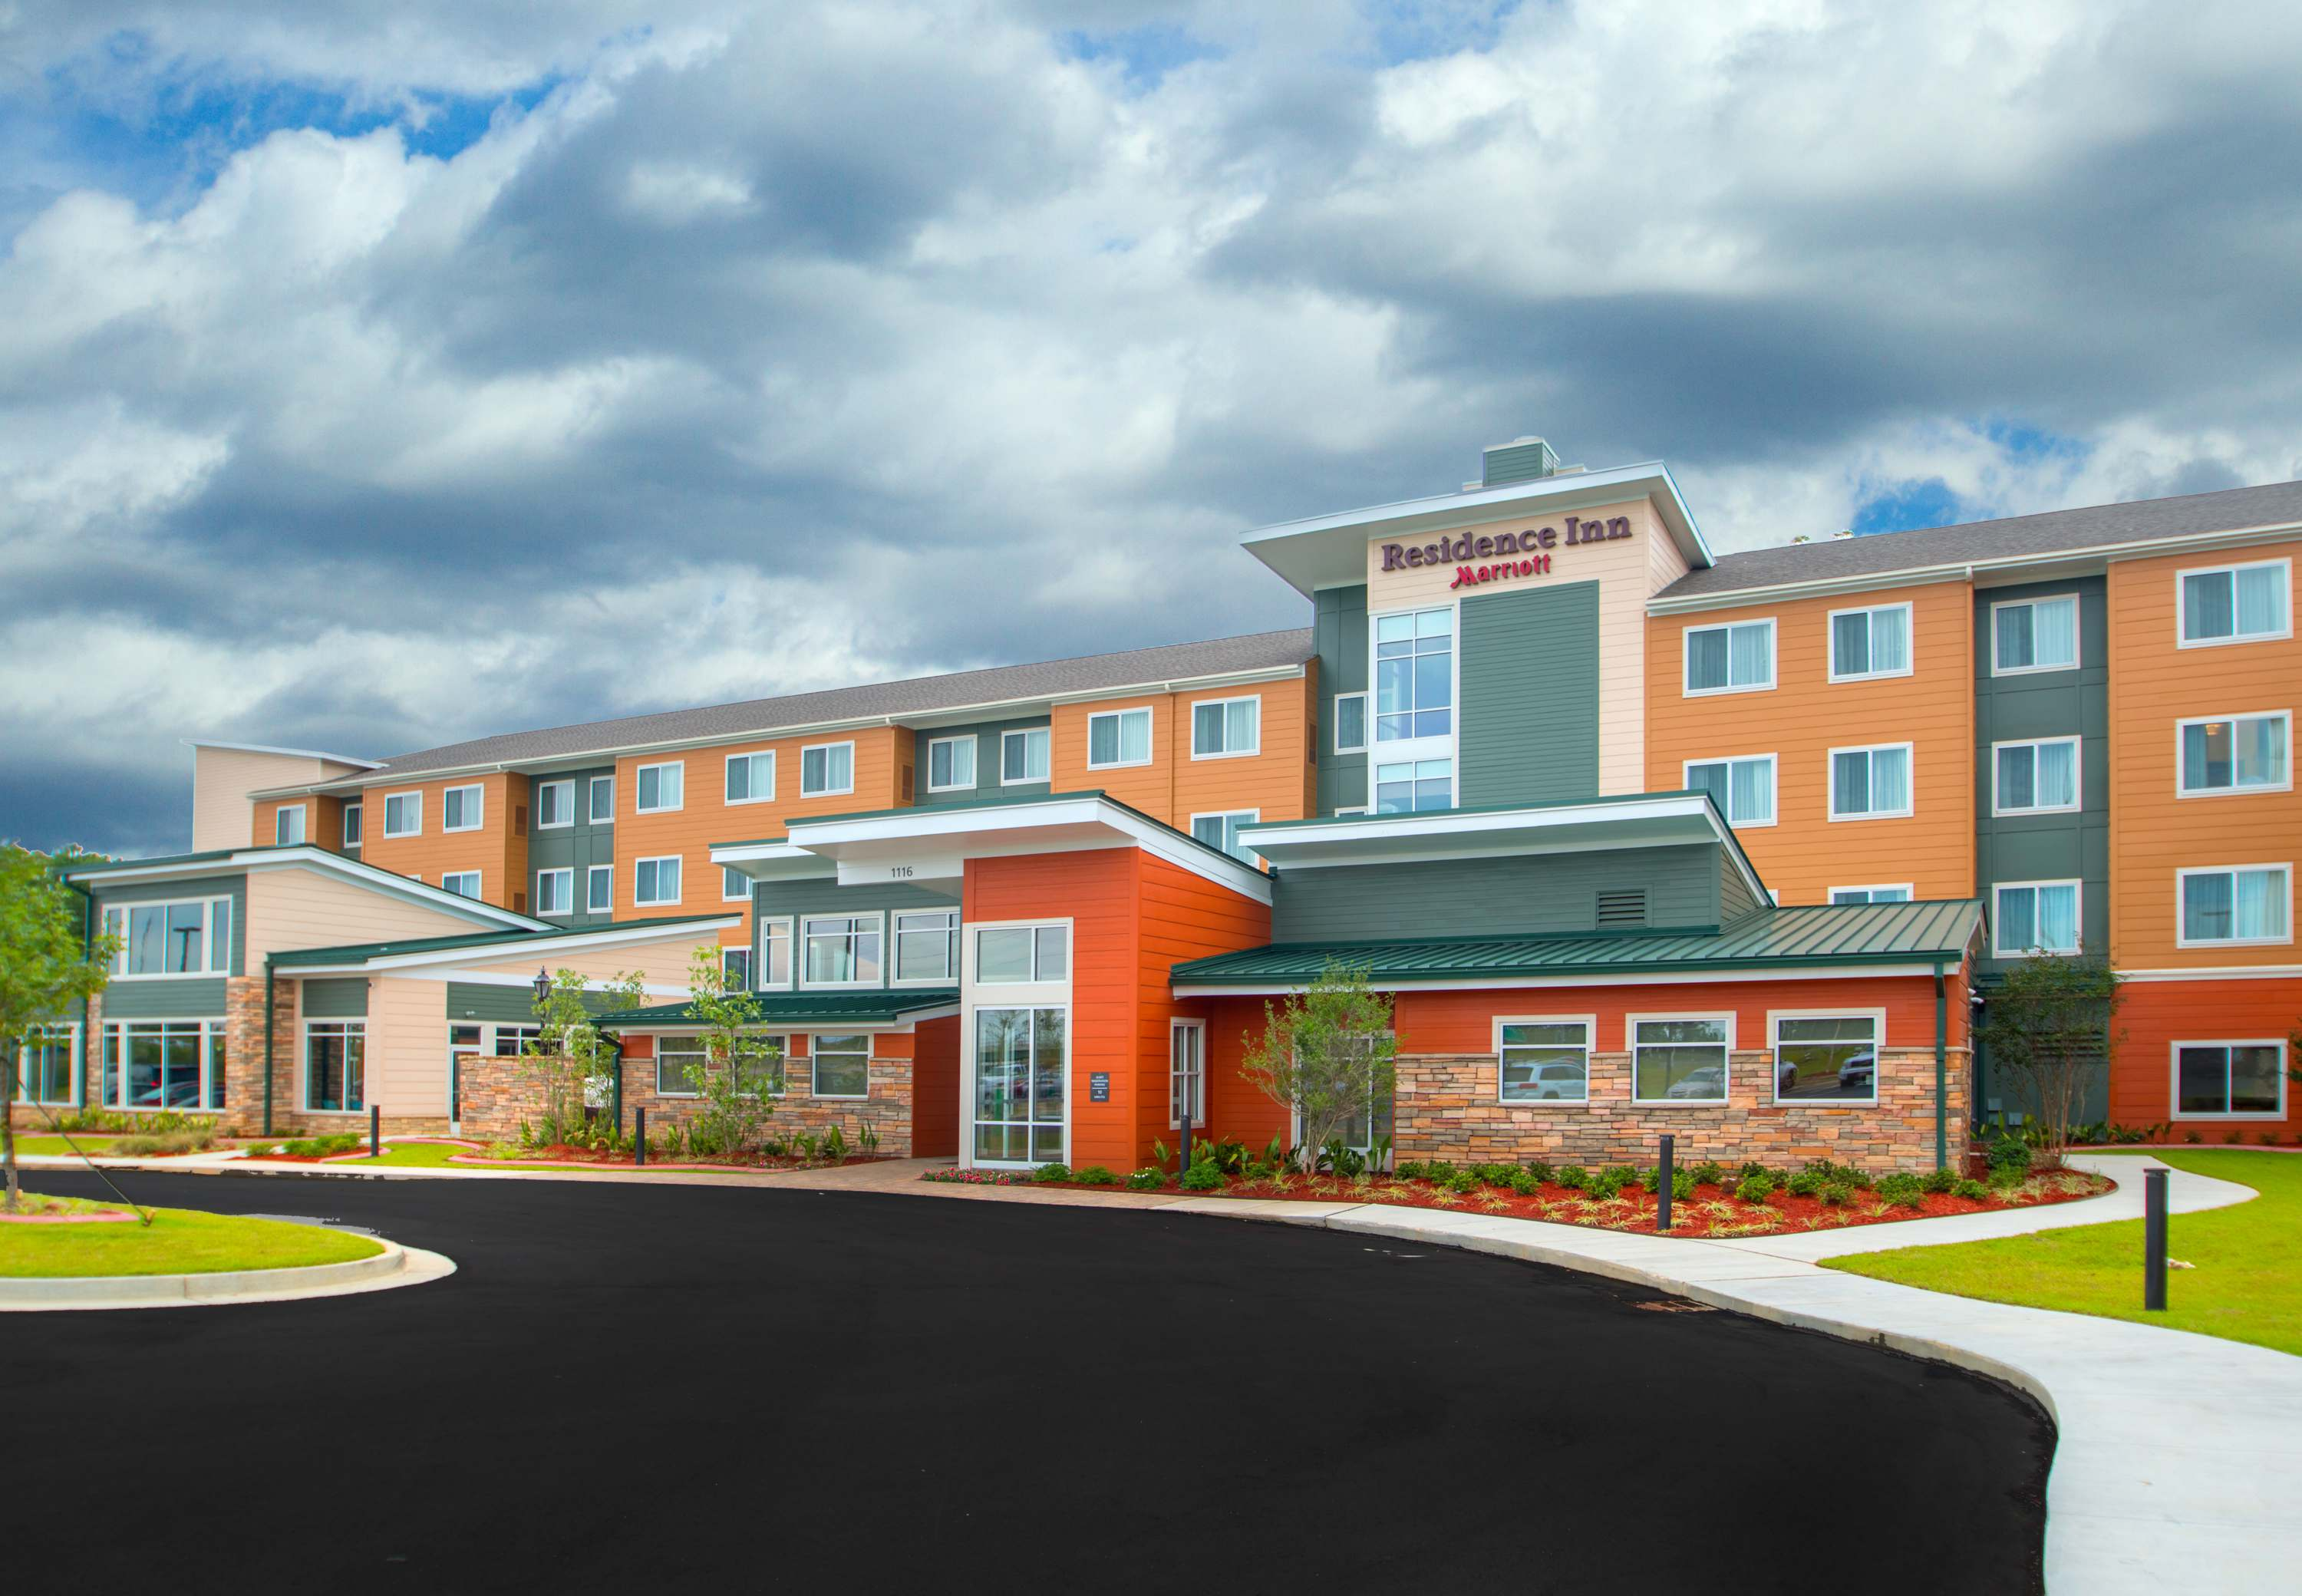 Residence Inn by Marriott Augusta image 13